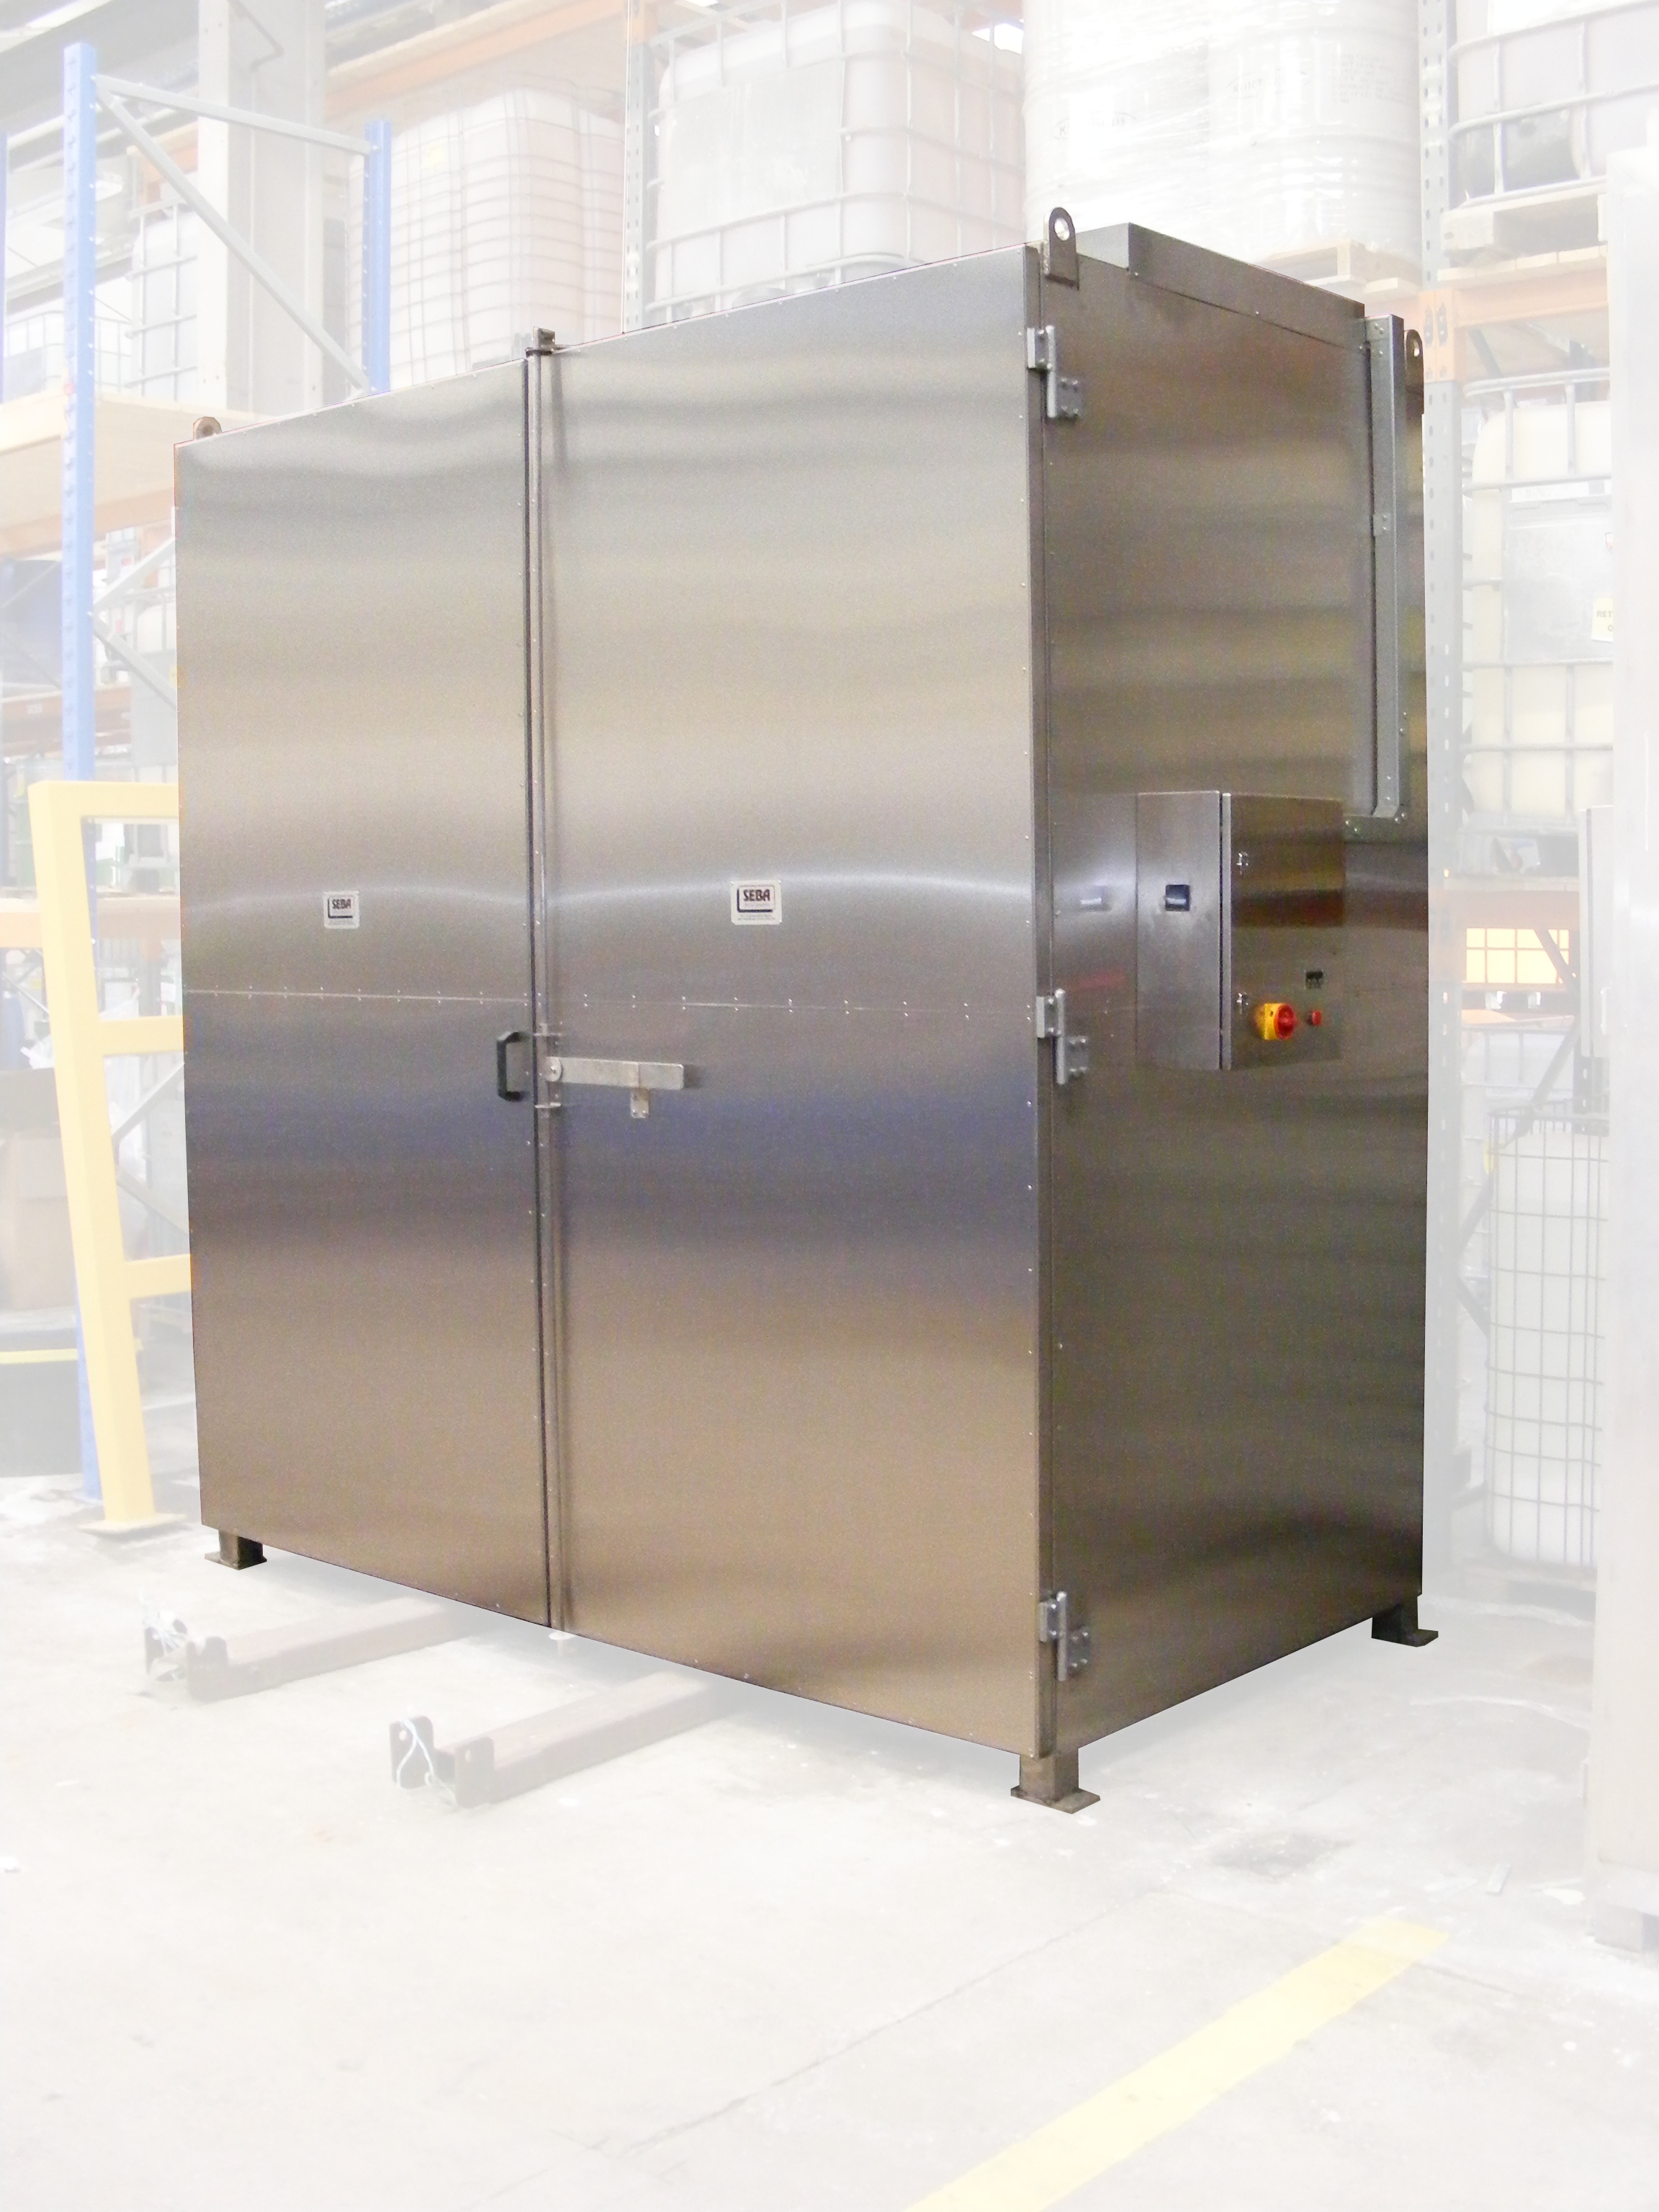 Stainless steel drying oven custom built electric free standing ovens